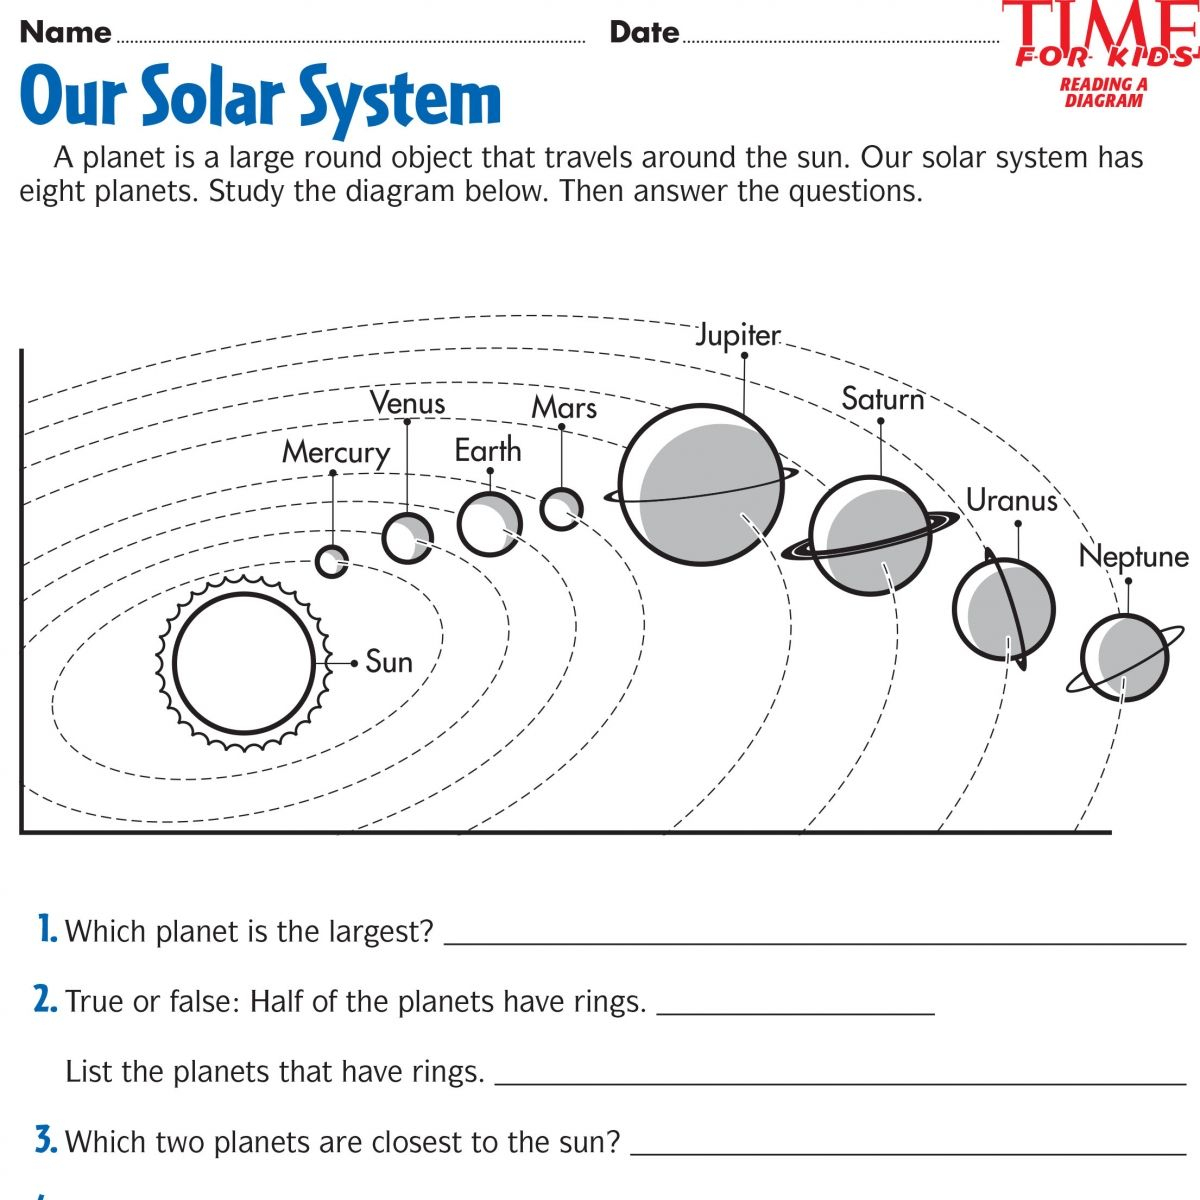 Space Printables   Time For Kids   {Third Grade}   Space Printables - Free Printable Solar System Worksheets